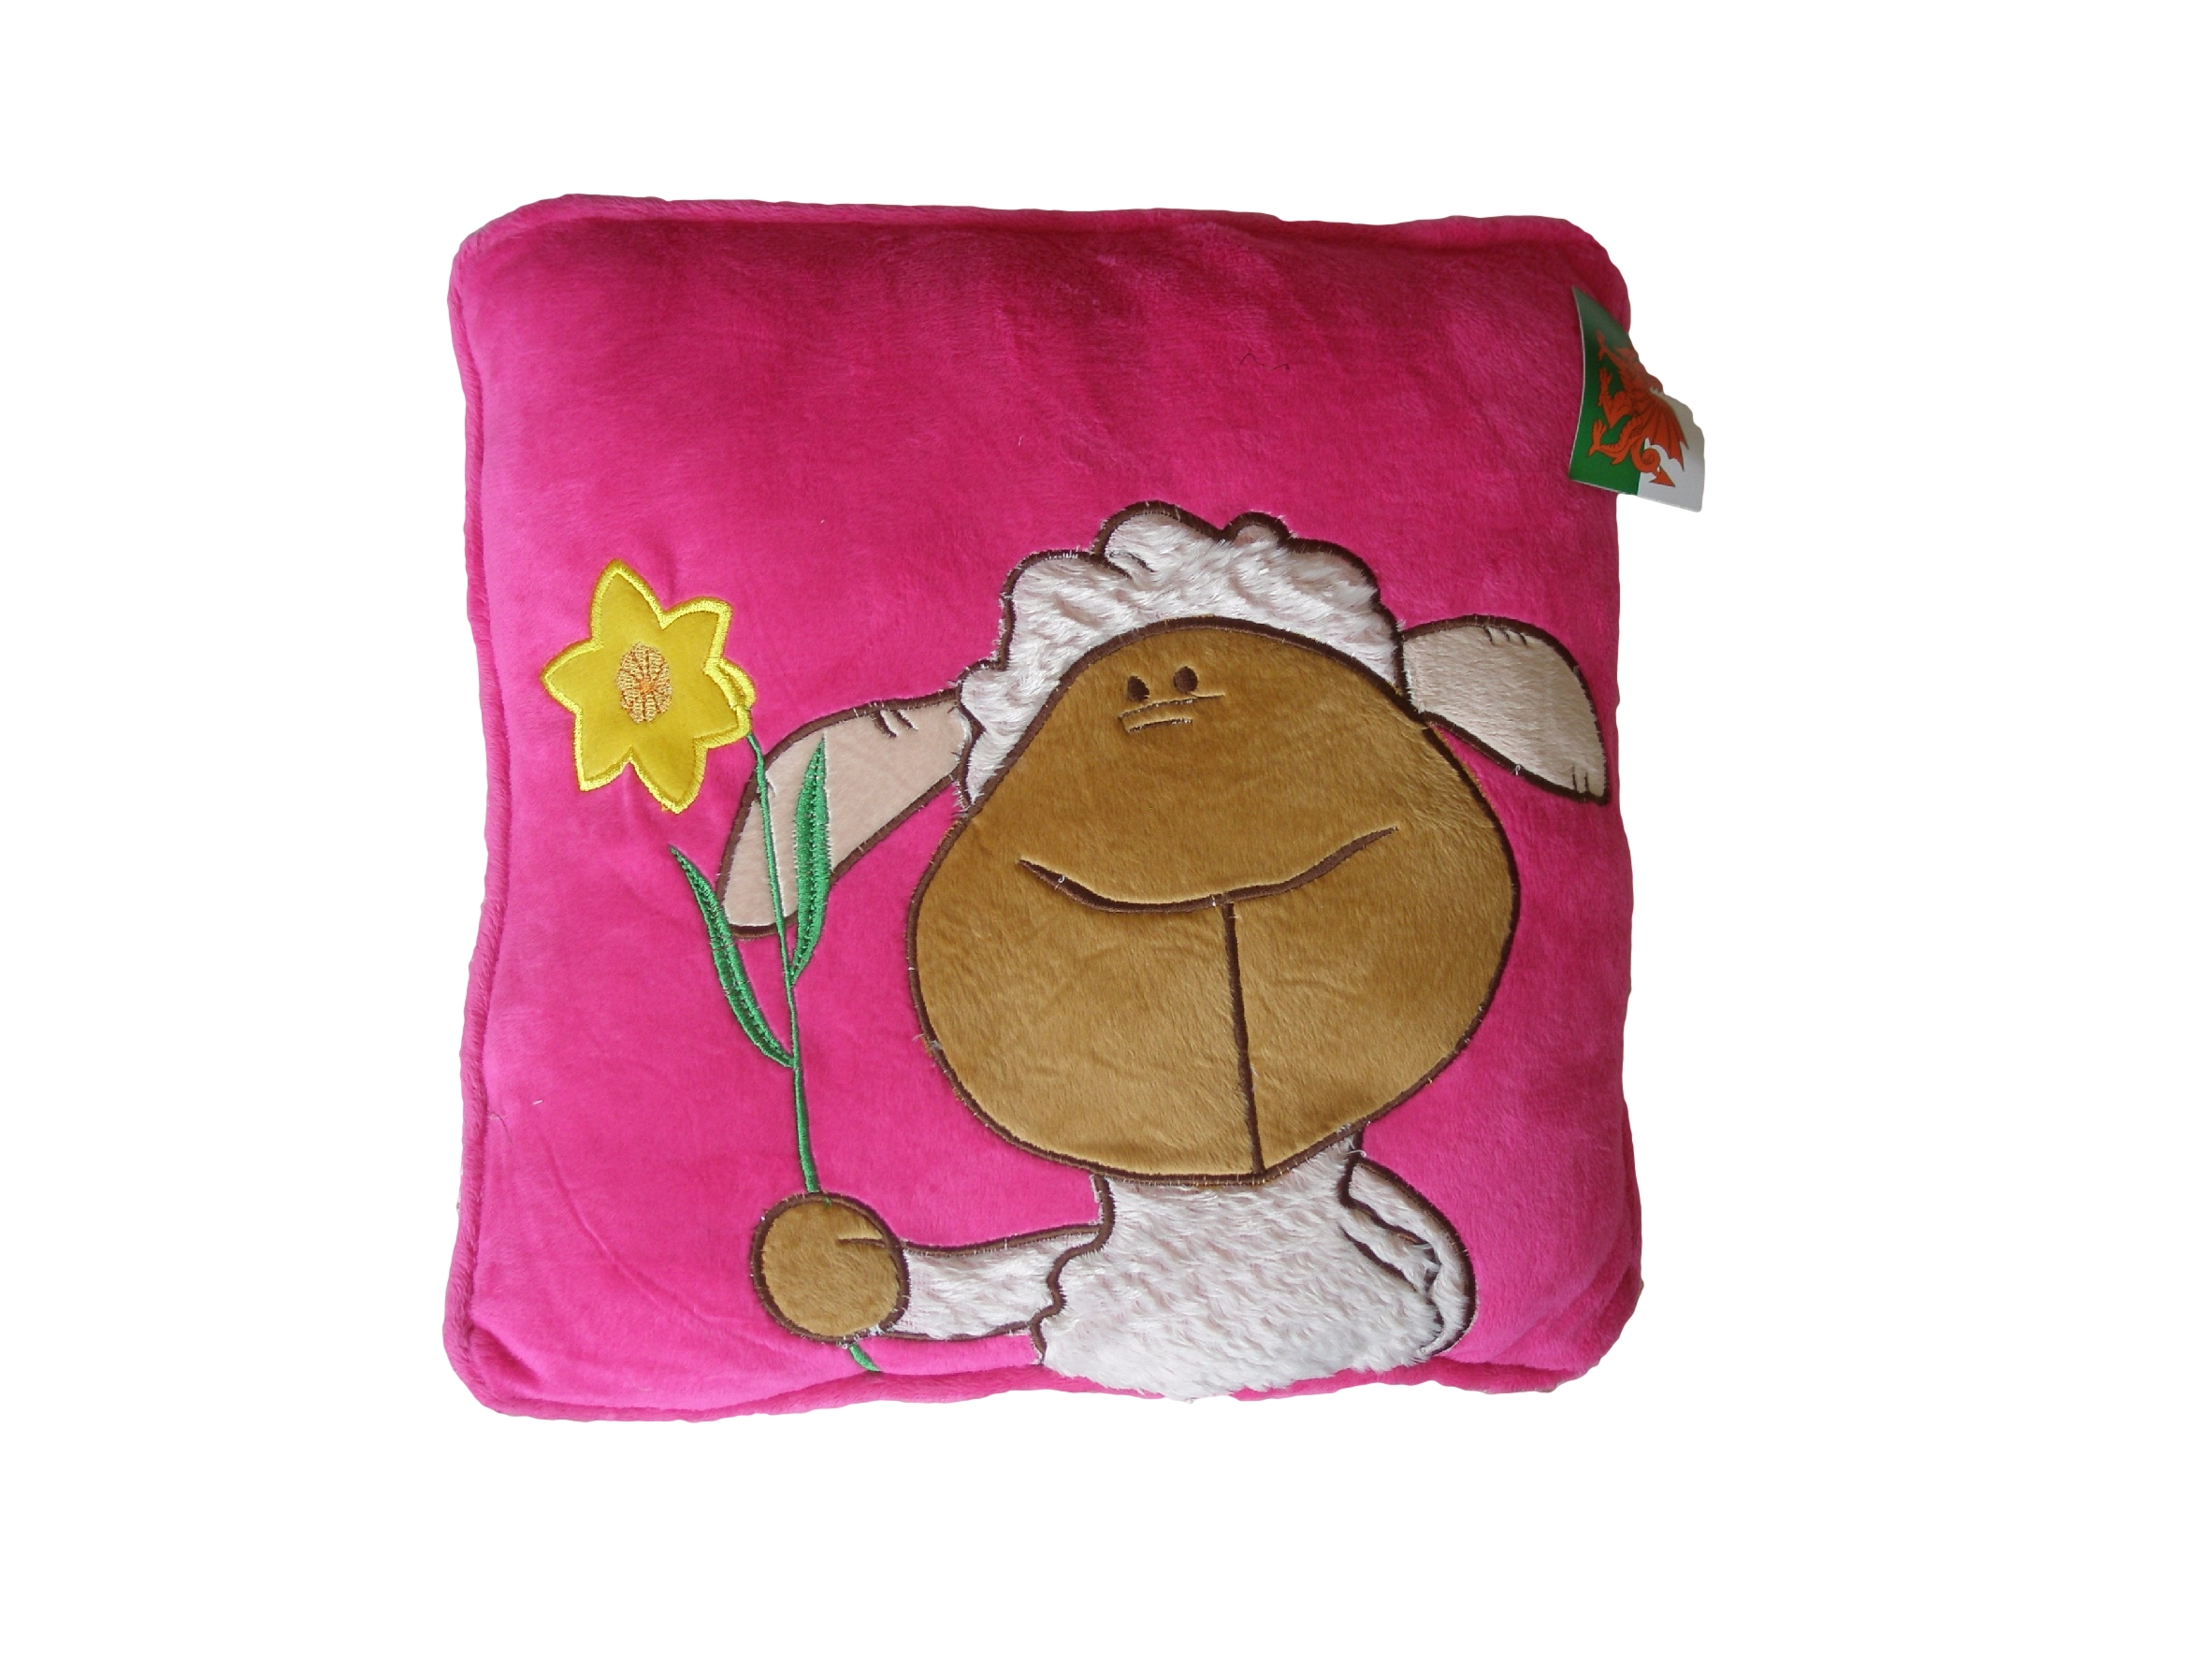 Welsh / Sheep / Daffodil Pink Plush Cushion